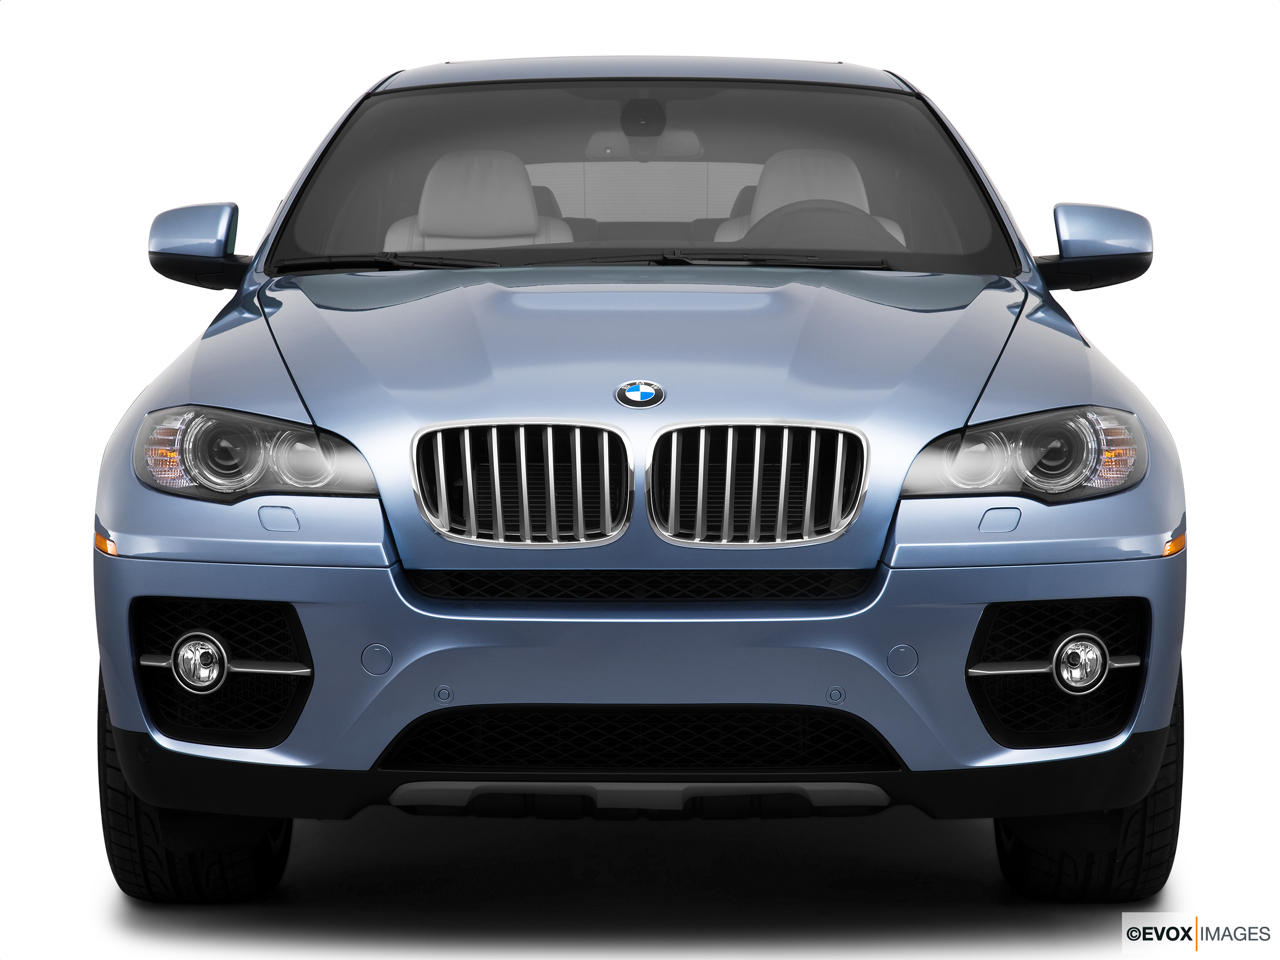 2010 BMW X6 Hybrid Base Low/wide front.